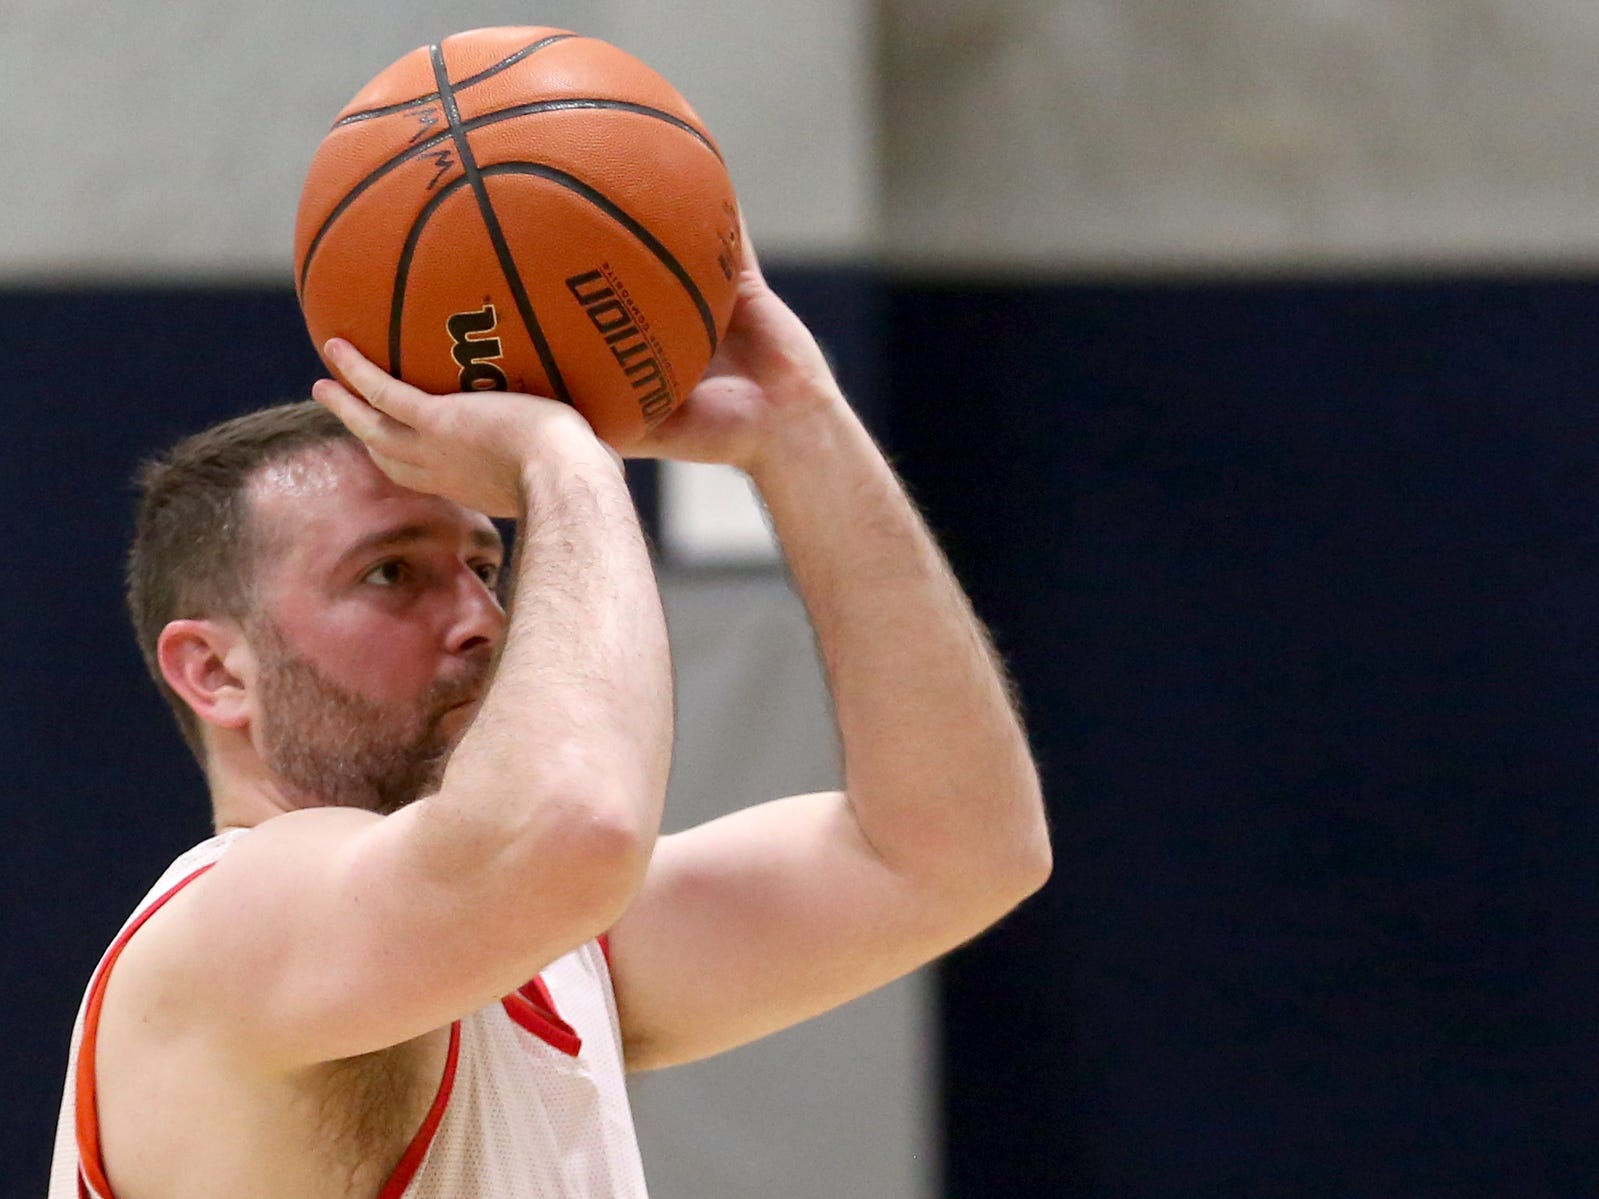 A Senate player eyes the basket in the second annual House vs. Senate charity basketball tournament at the Boys & Girls Club in Salem on March 13, 2019. The tournament raised more than $10,000 for the Oregon Alliance of Boys & Girls Clubs.